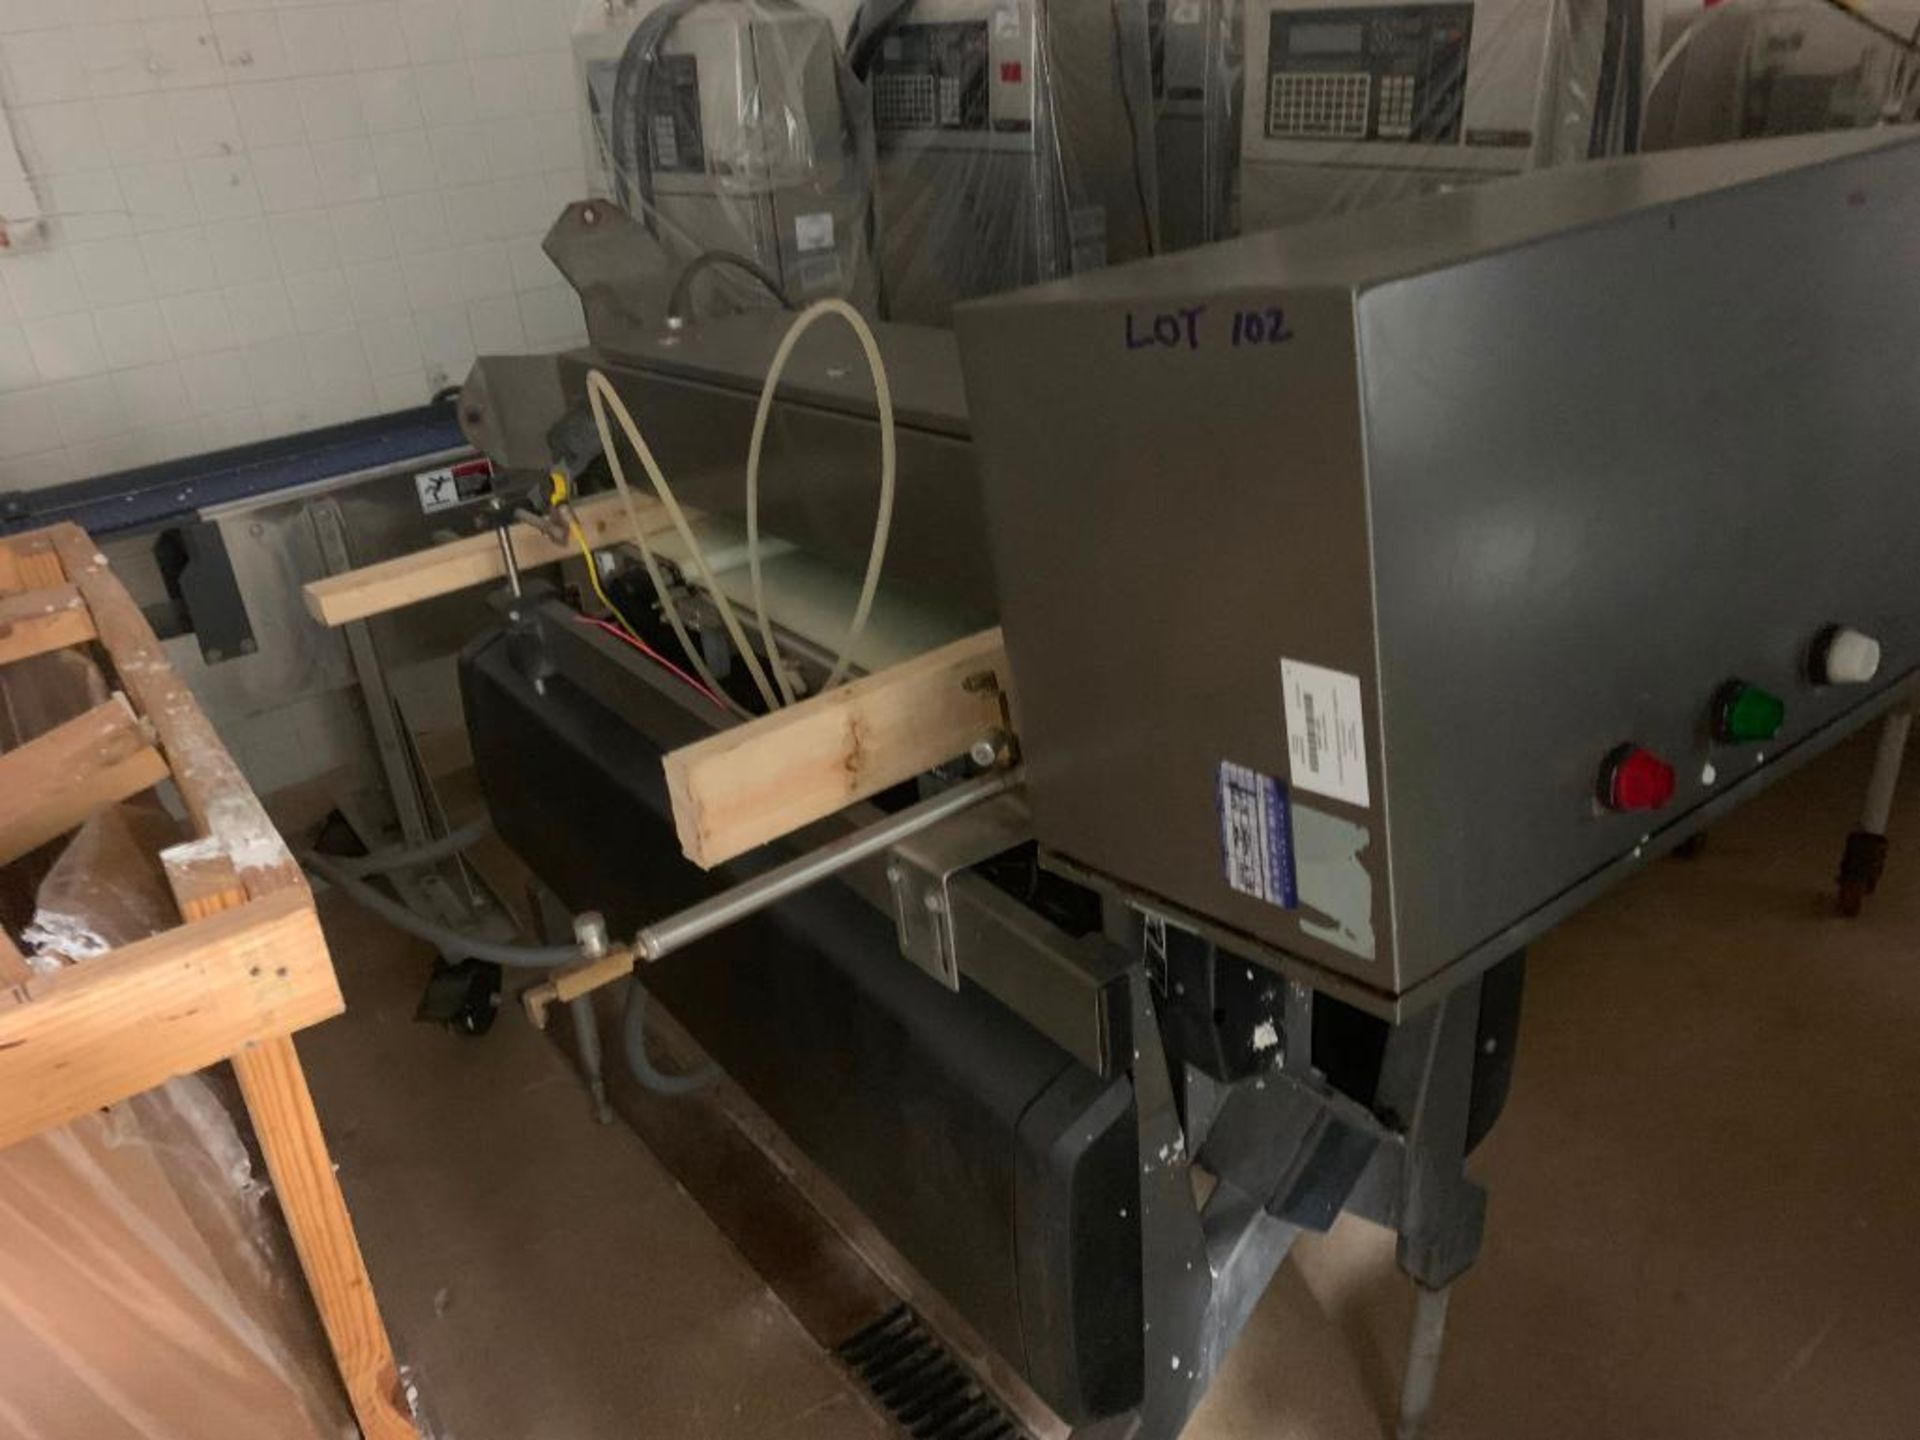 Lot 102 - Mettler Toledo check weigher. (Located in Manawa, WI)